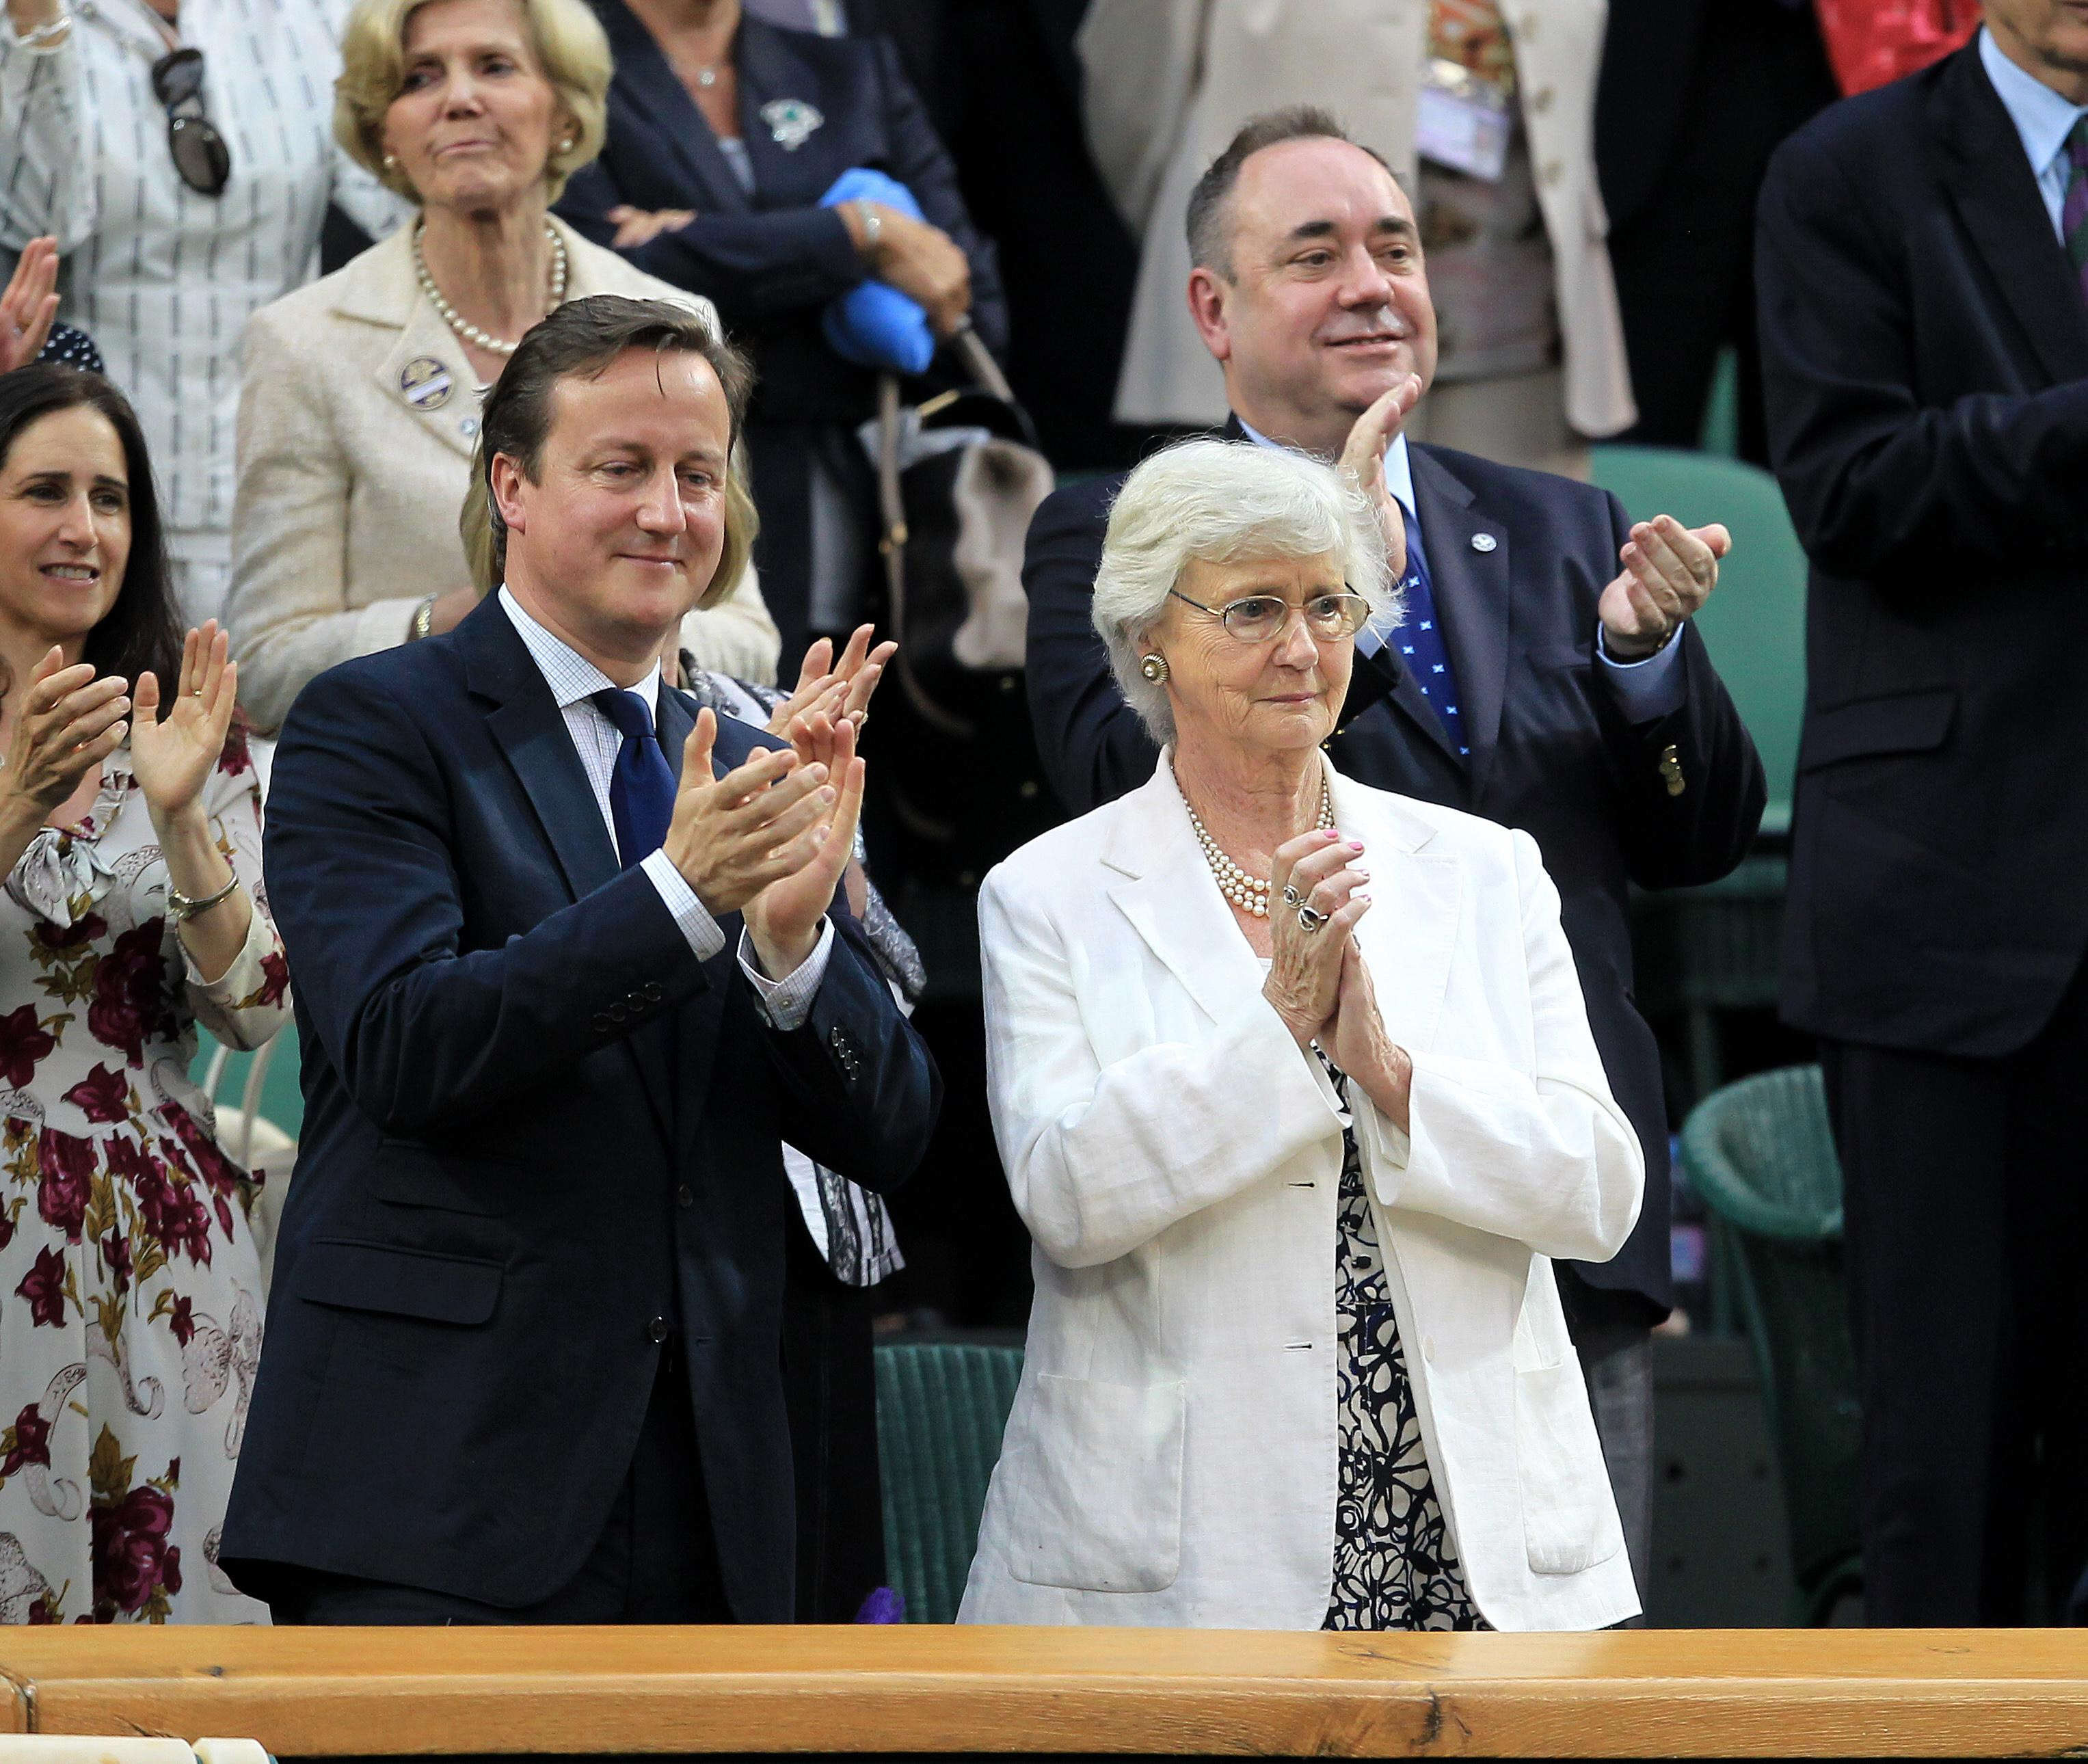 PA 25472743 David Cameron Has Even Managed To Piss Off His Own Mum With His Latest Policy